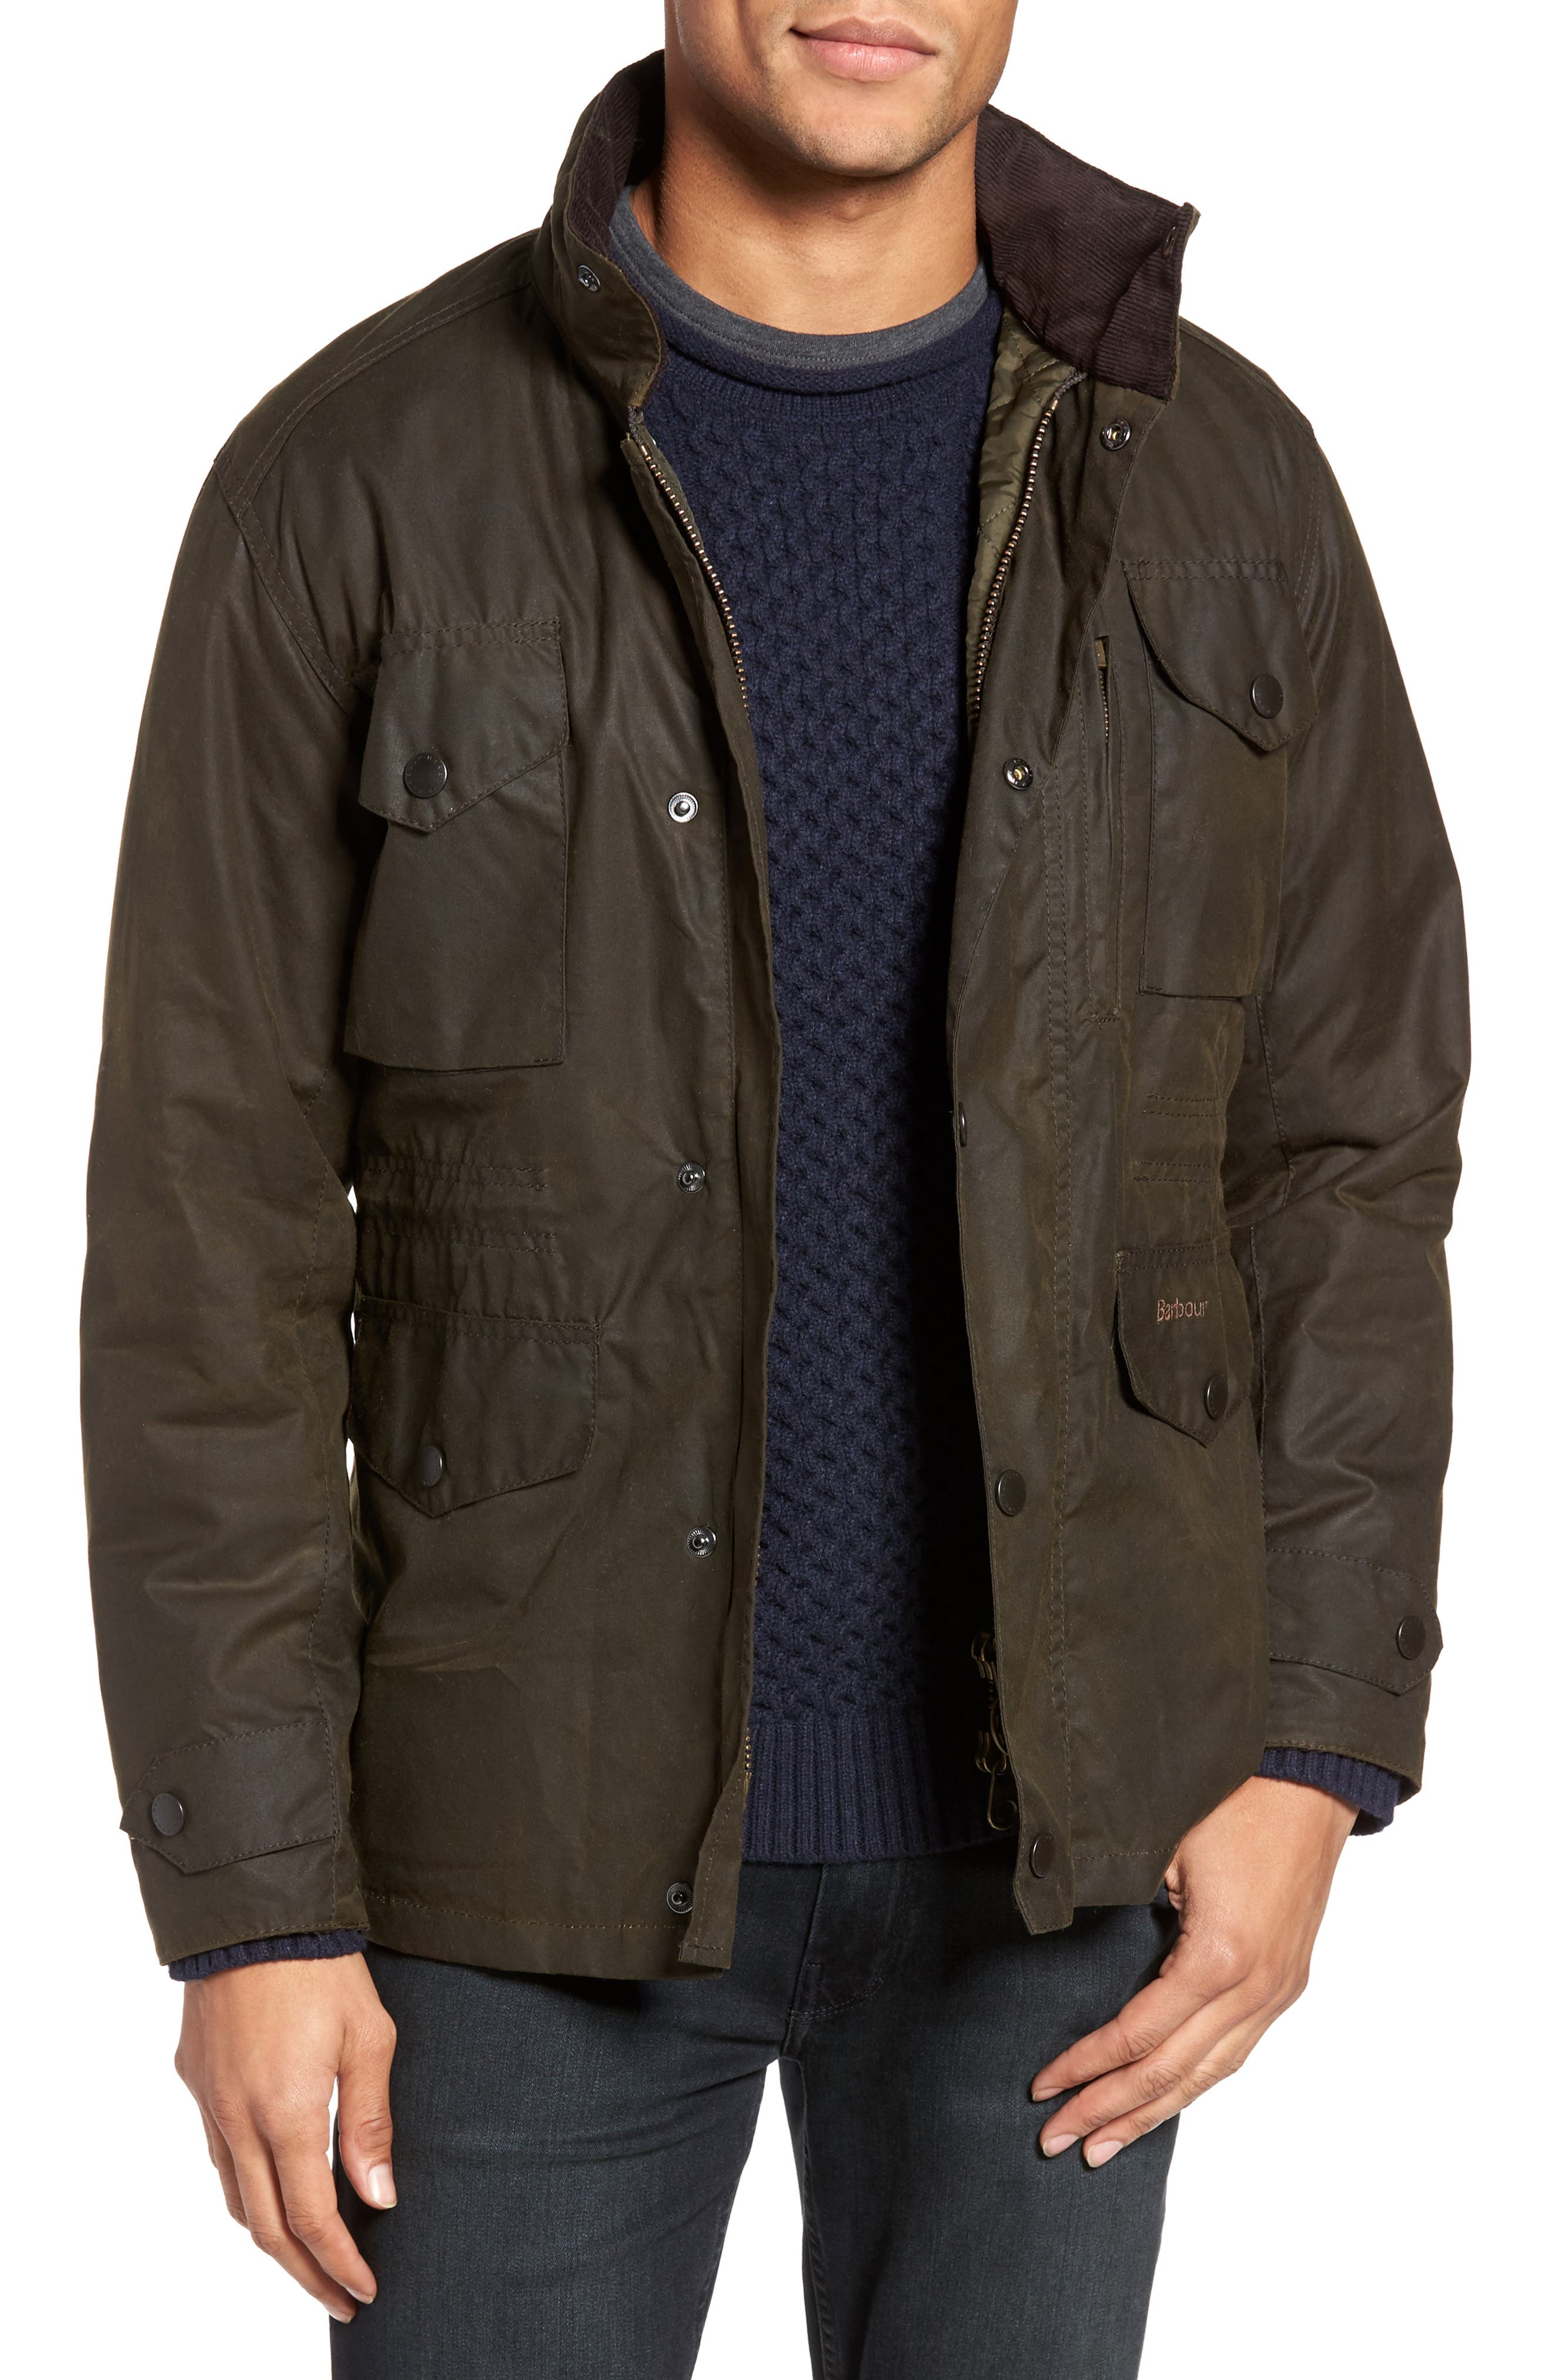 BARBOUR, Sapper Regular Fit Weatherproof Waxed Cotton Jacket, Main thumbnail 1, color, OLIVE